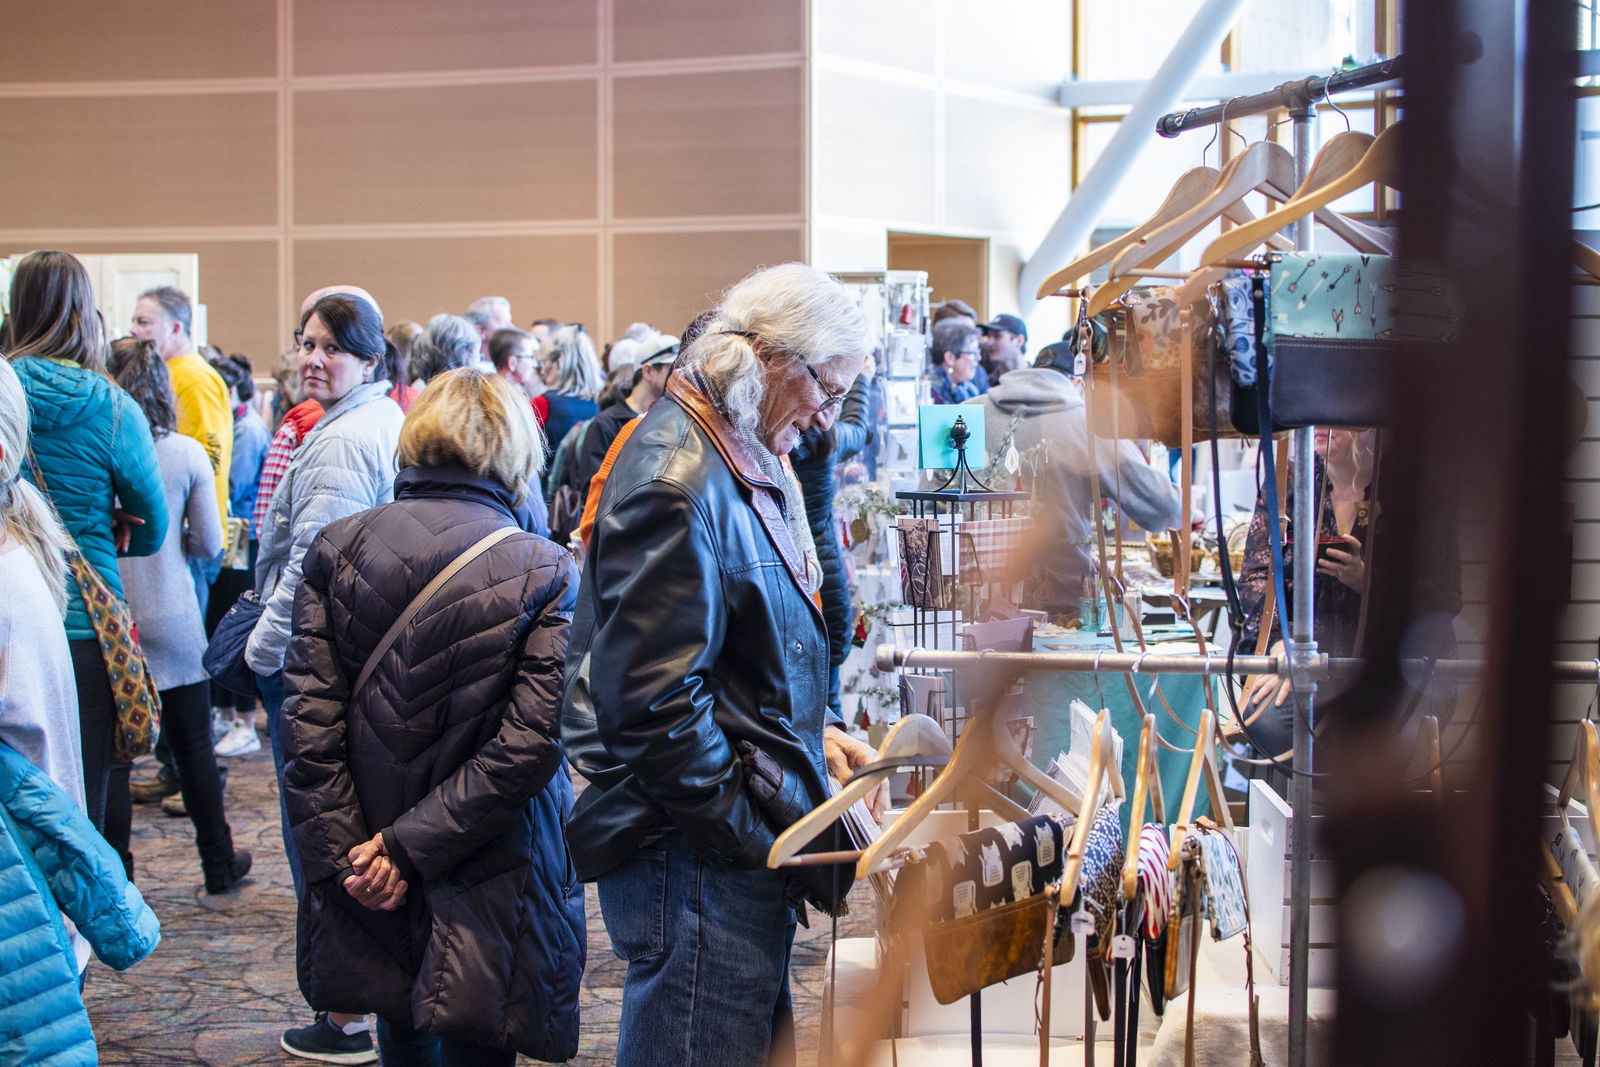 Looking for a fun Sunday activity? Check out the Wintry Market at the Jump in Boise. The event will be open from 10:00 AM to 5:00 PM on Sunday. (Photos by Axel Quartarone)